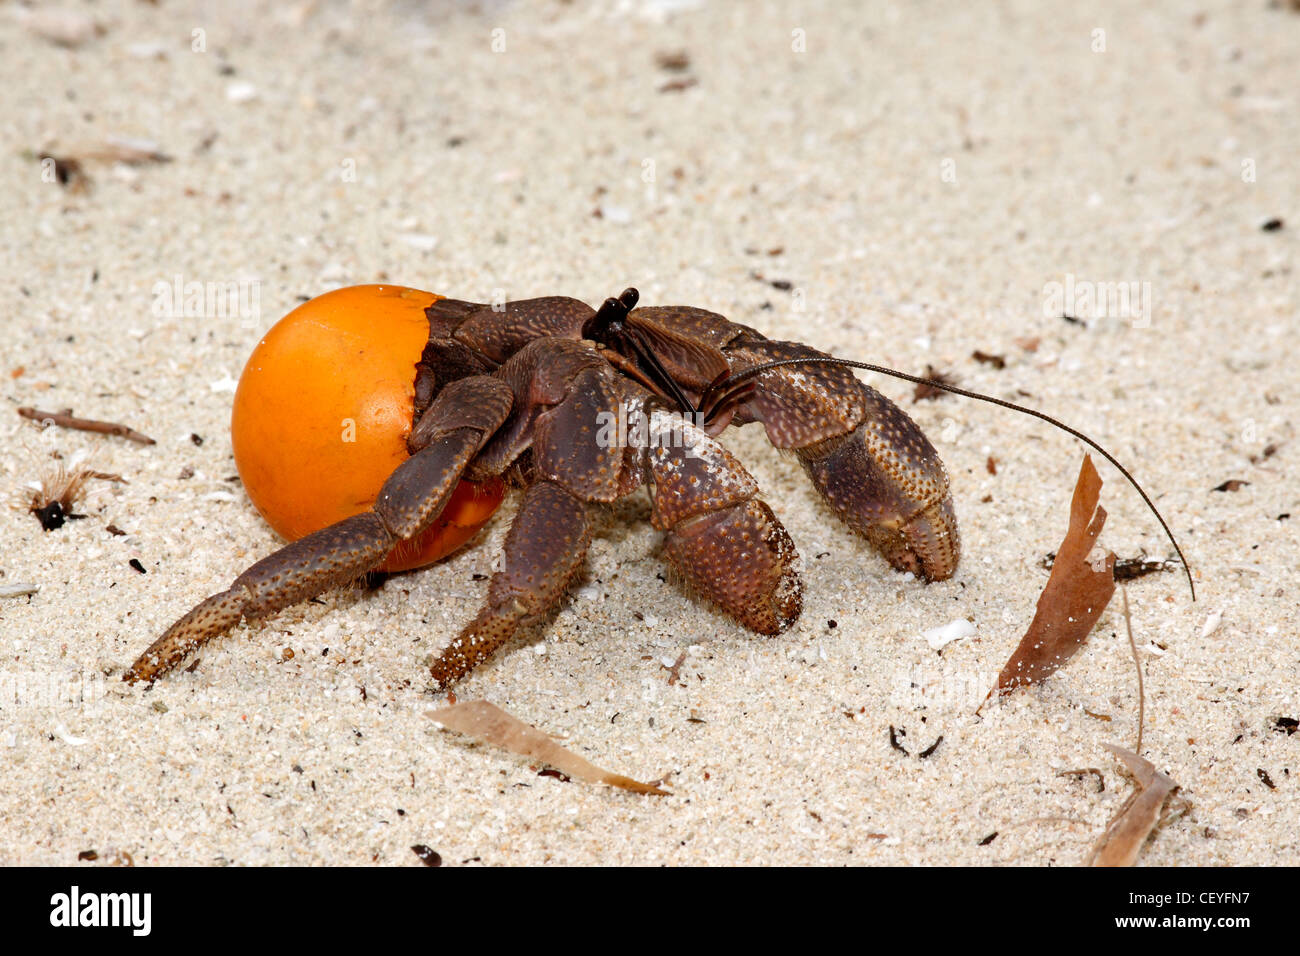 this-hermit-crab-coenobita-is-using-an-o